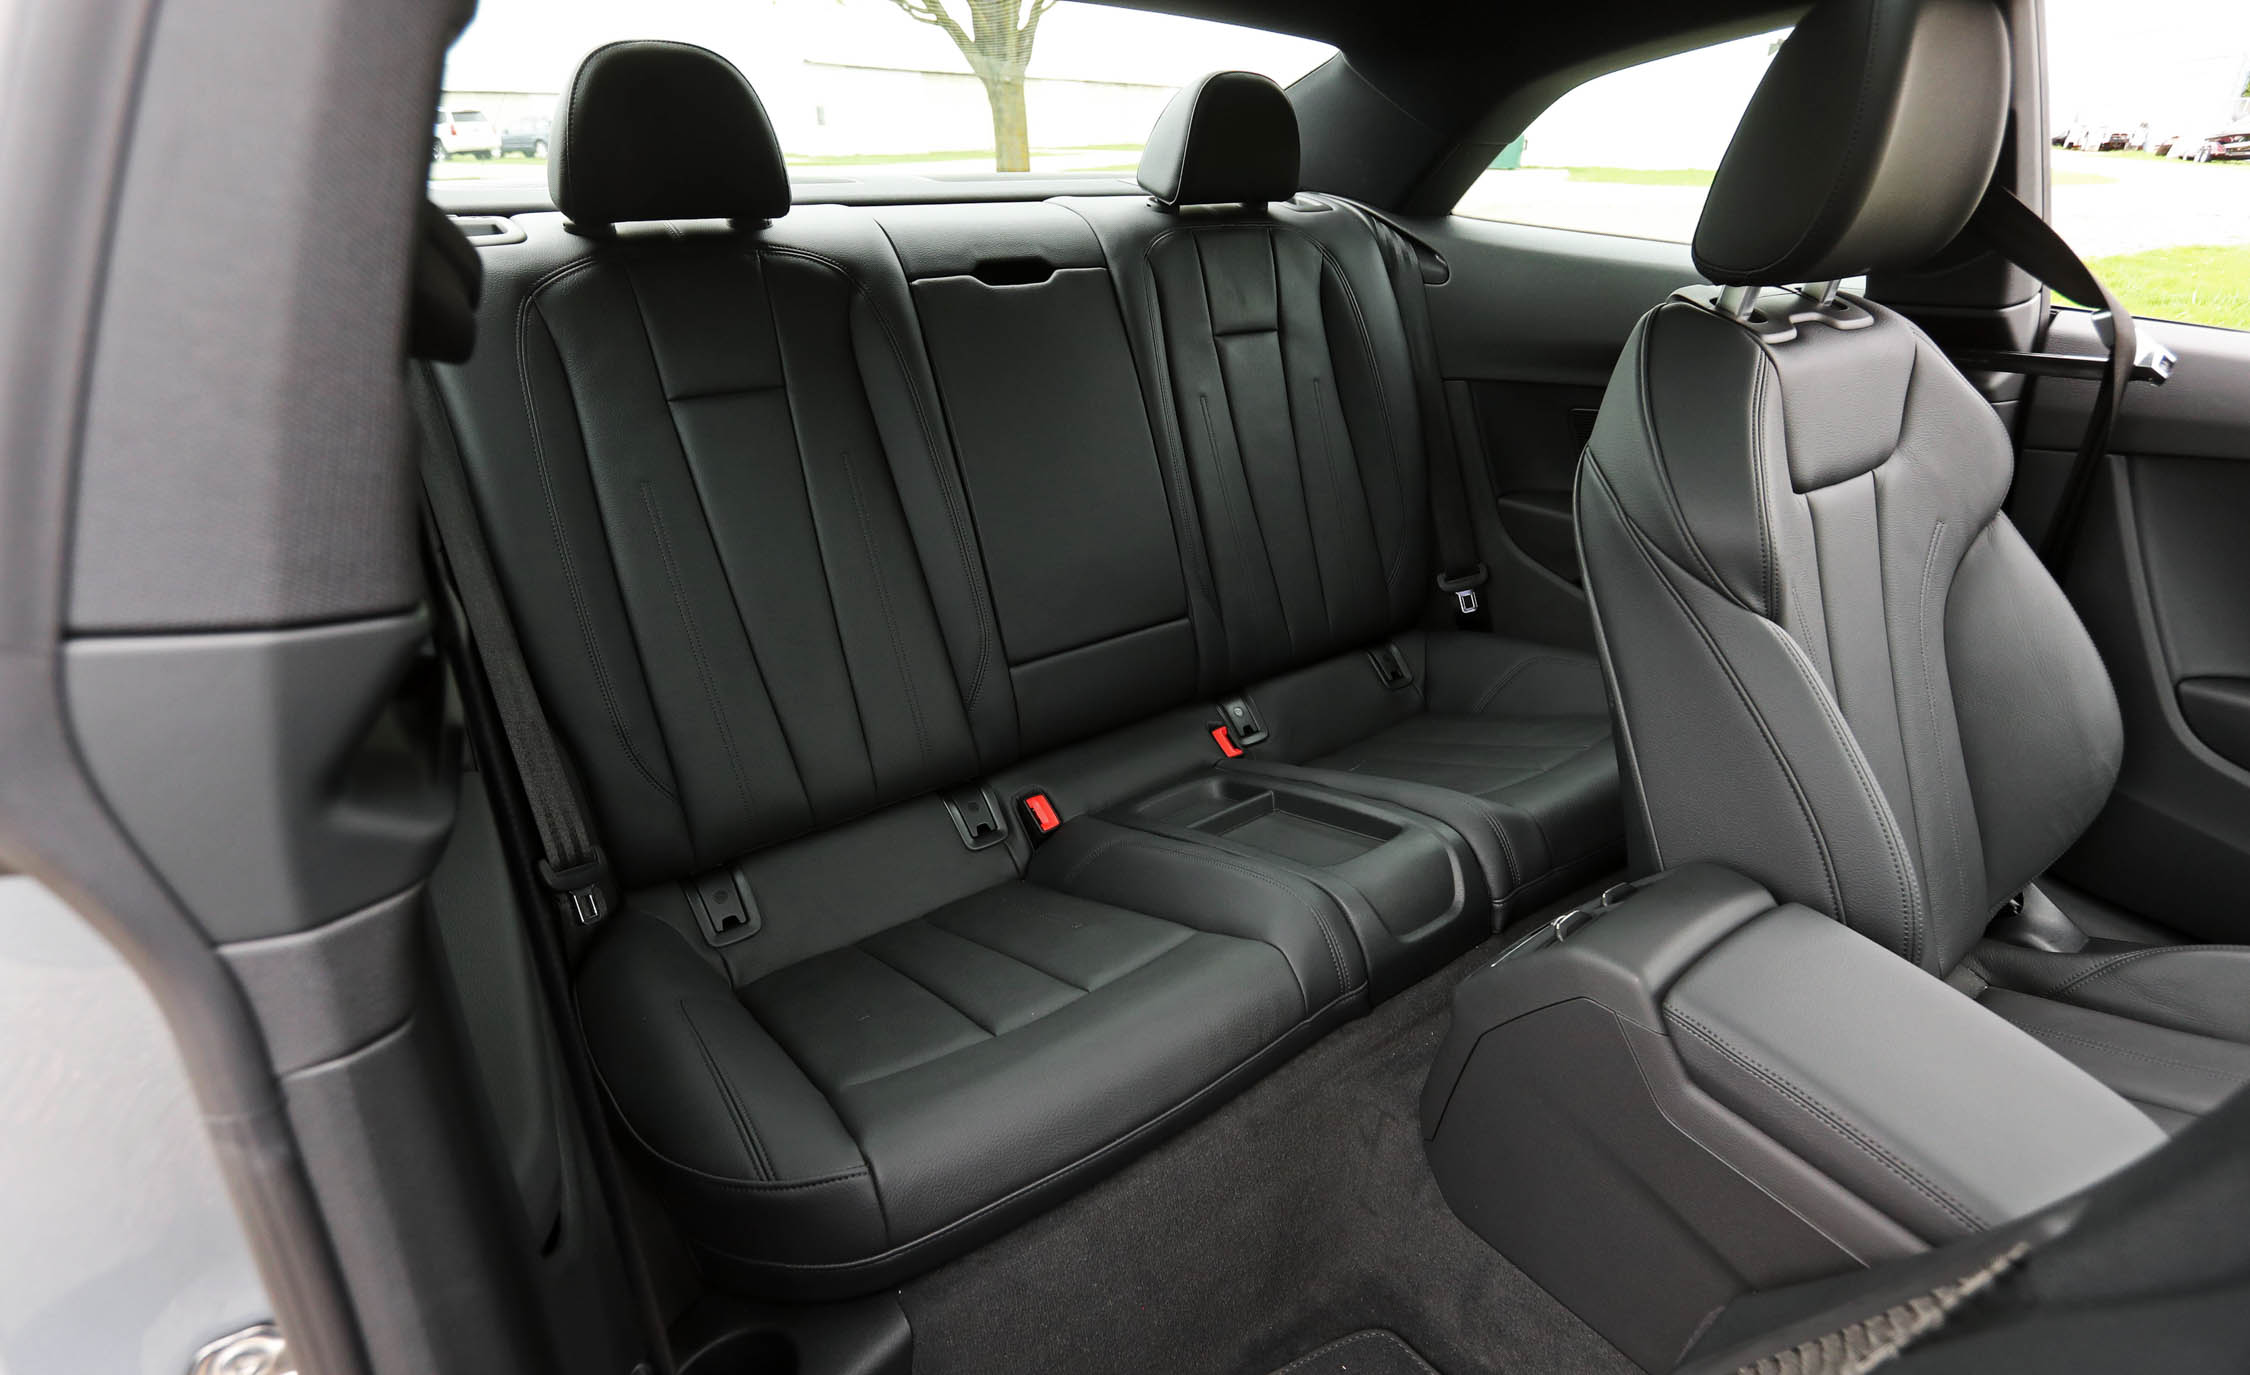 2018 Audi A5 Coupe Interior Seats Rear Passengers (Photo 23 of 50)